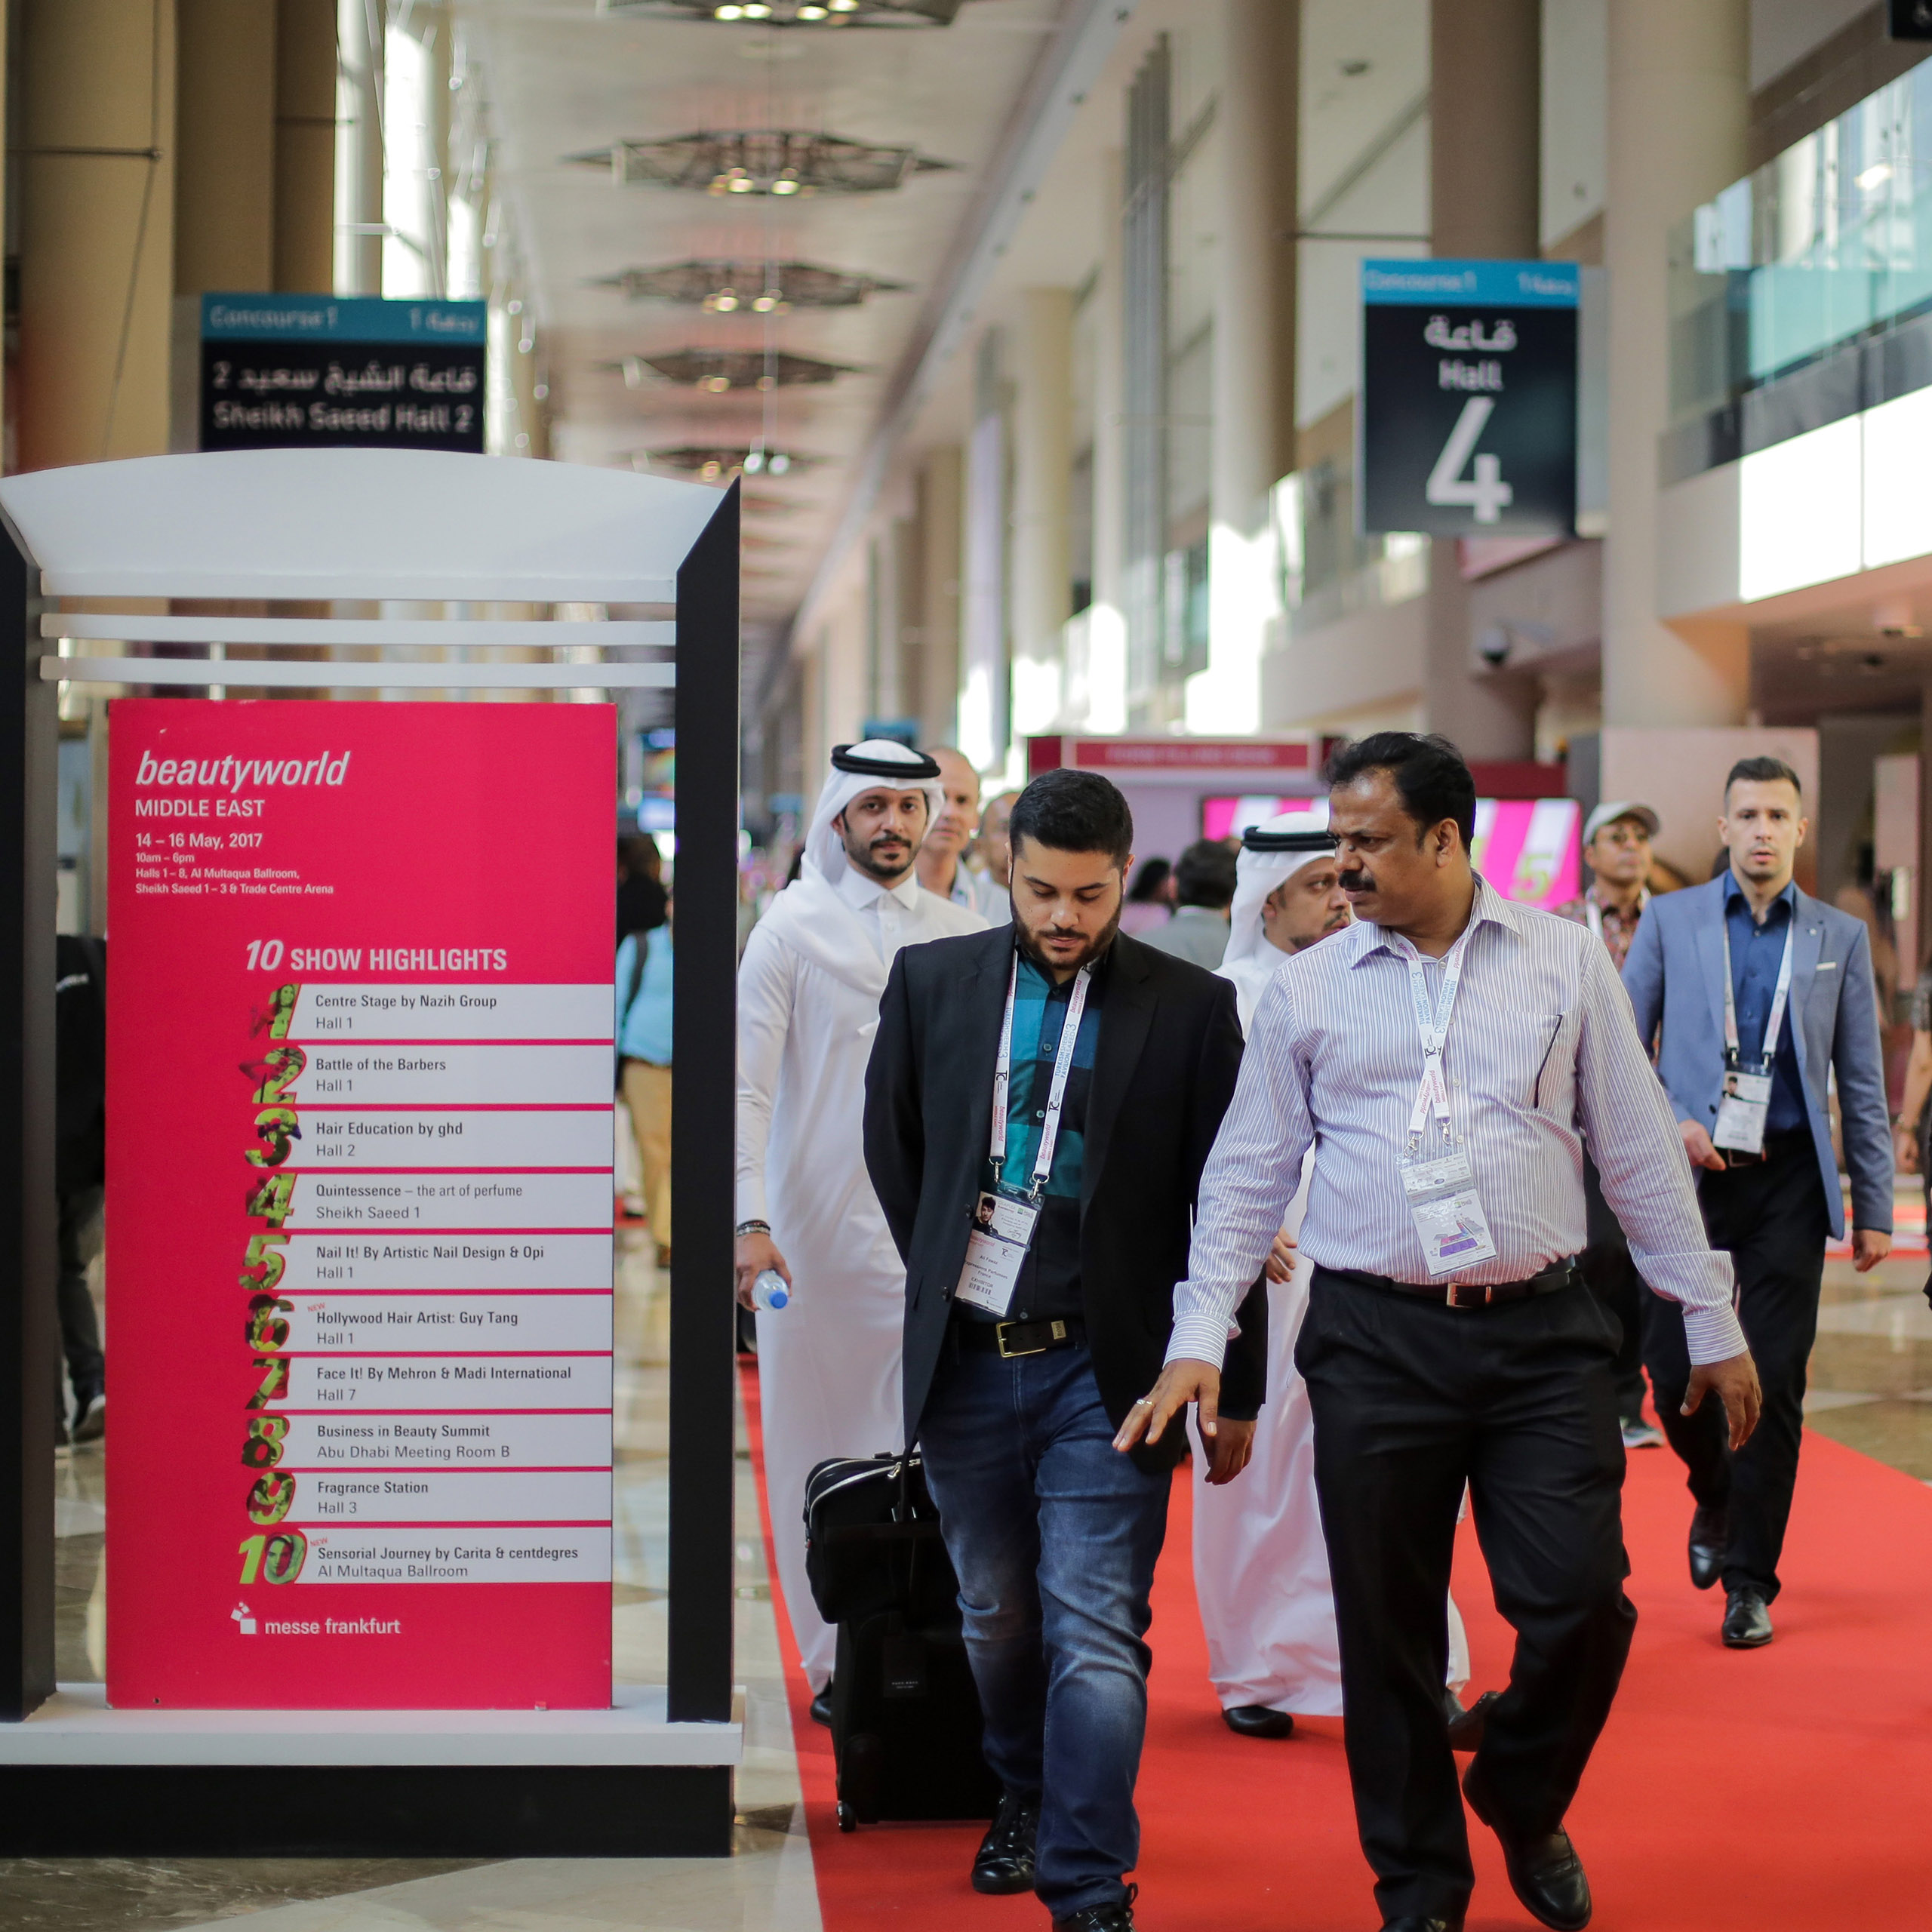 Beautyworld Middle East 2017 concludes in spectacular style attracting 42,012 visitors from 135 countries